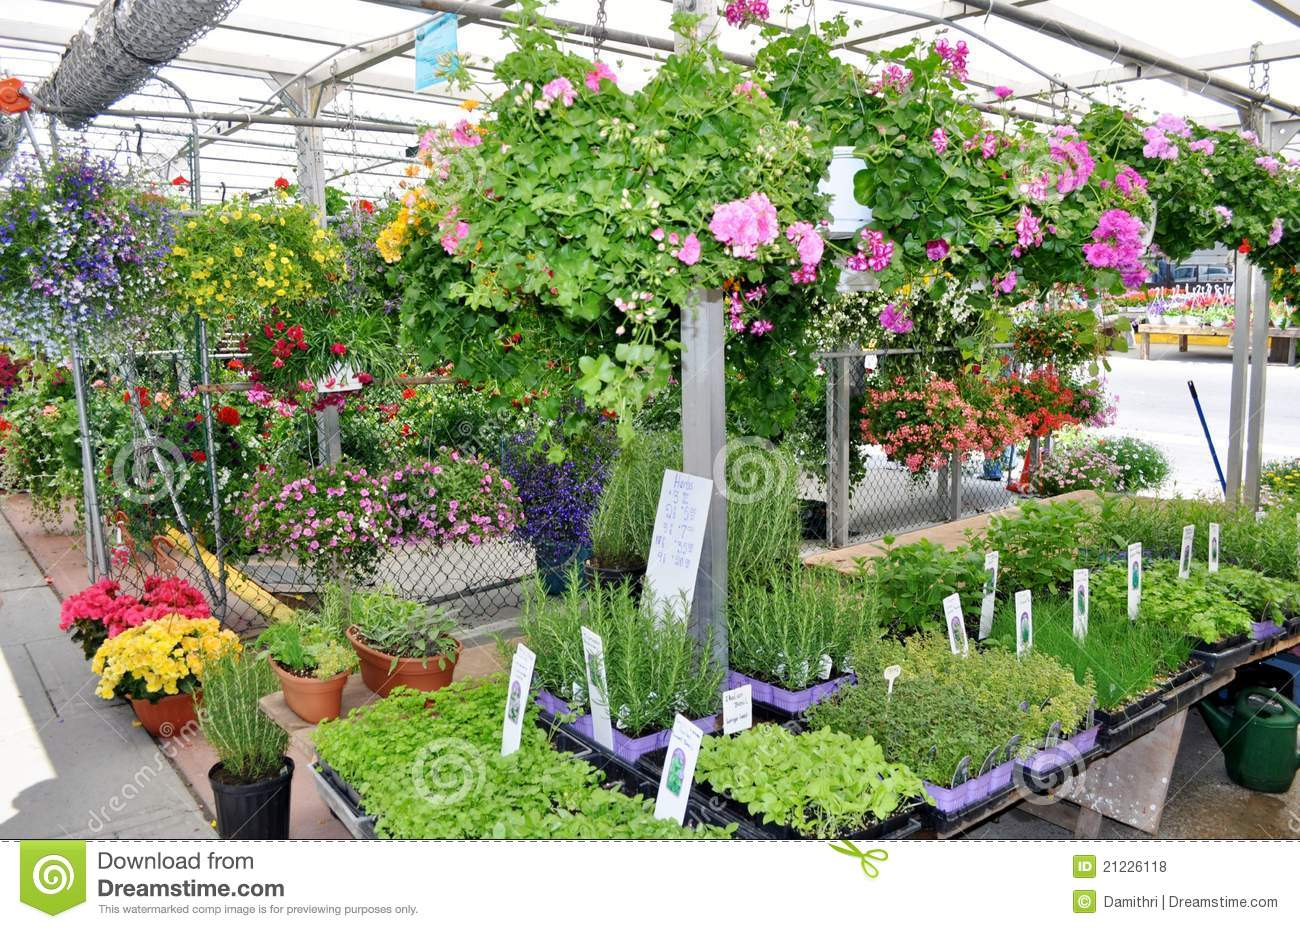 Plant Varieties For Sale Royalty Free Stock Photos Image